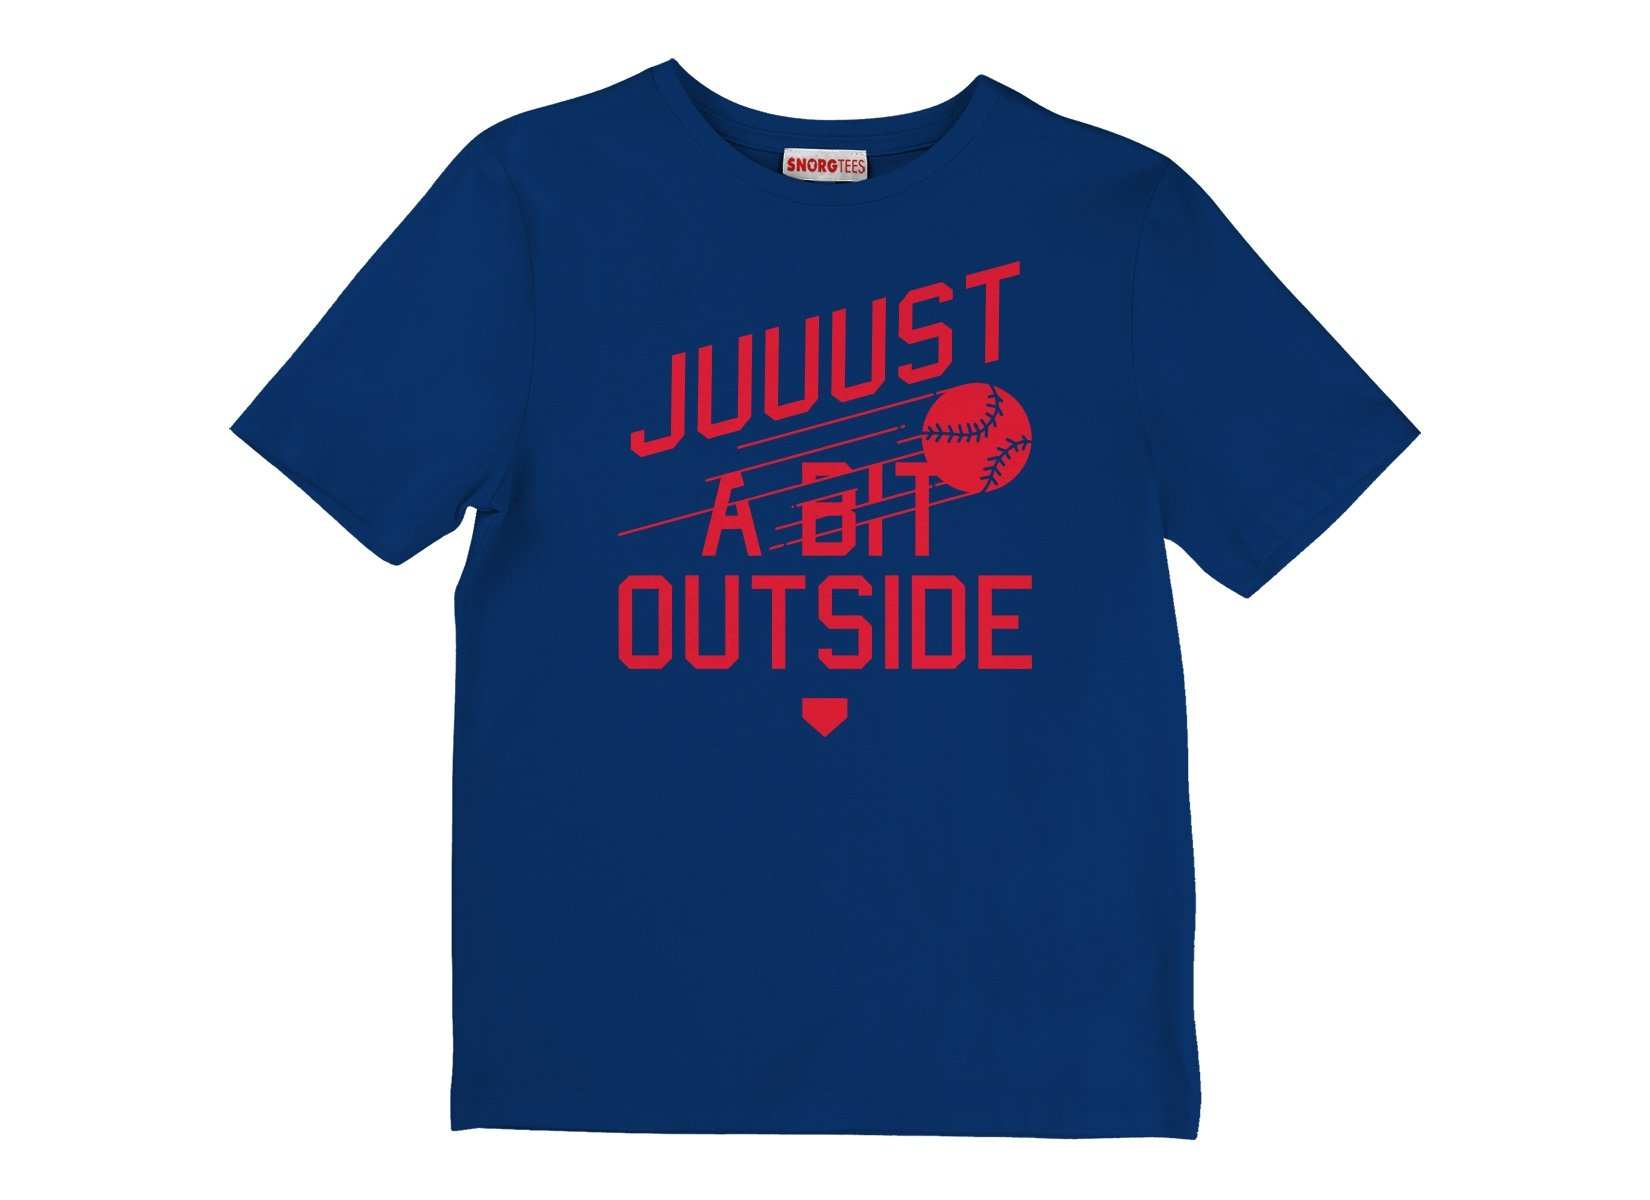 Just A Bit Outside on Kids T-Shirt